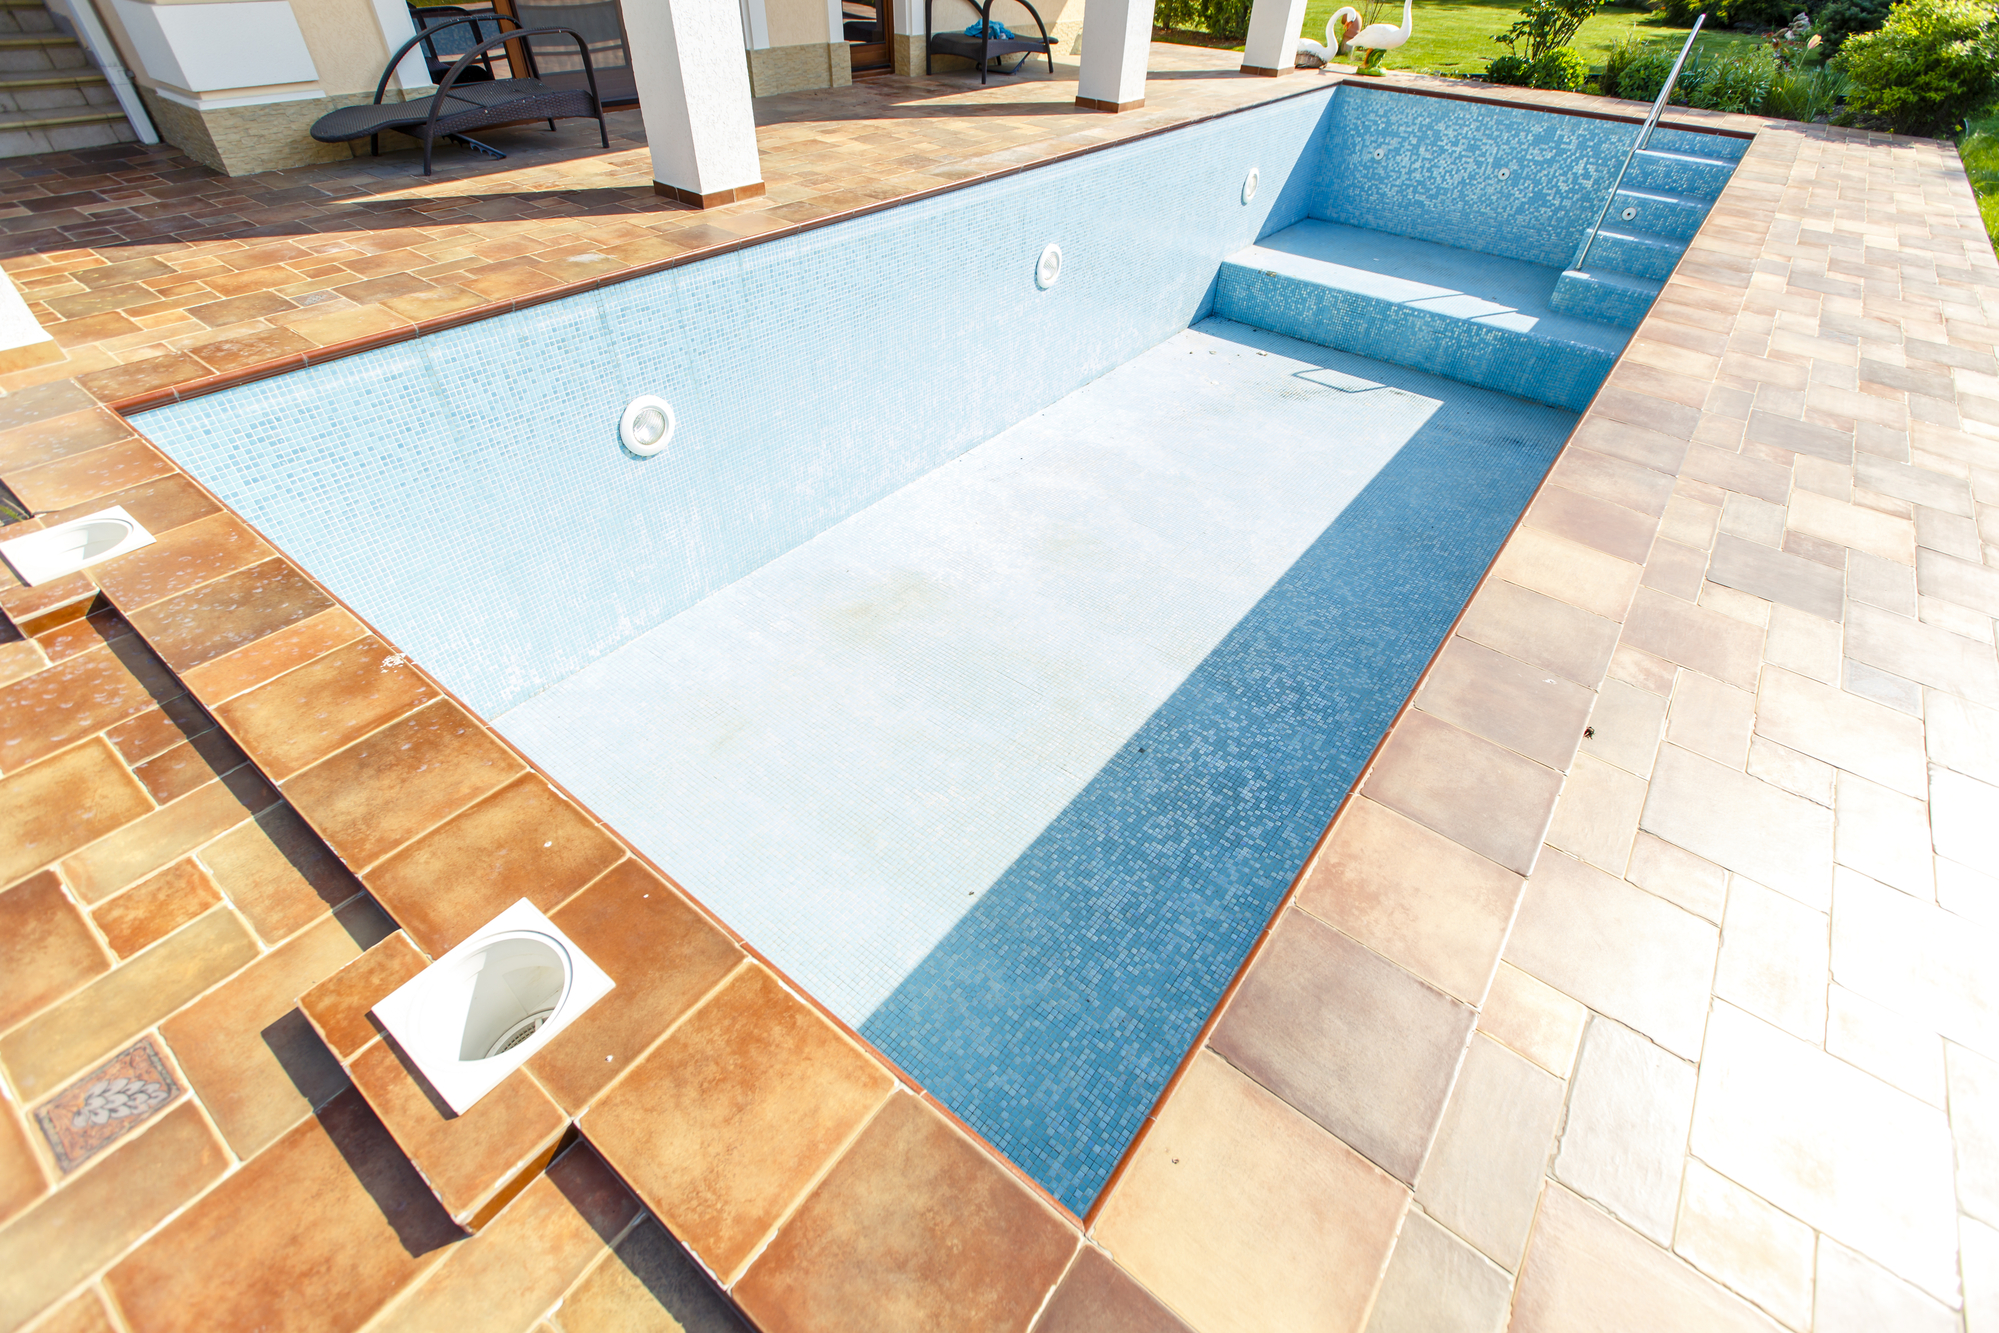 B & S Farms - Swimming Pool Water Delivery Service in Maryland